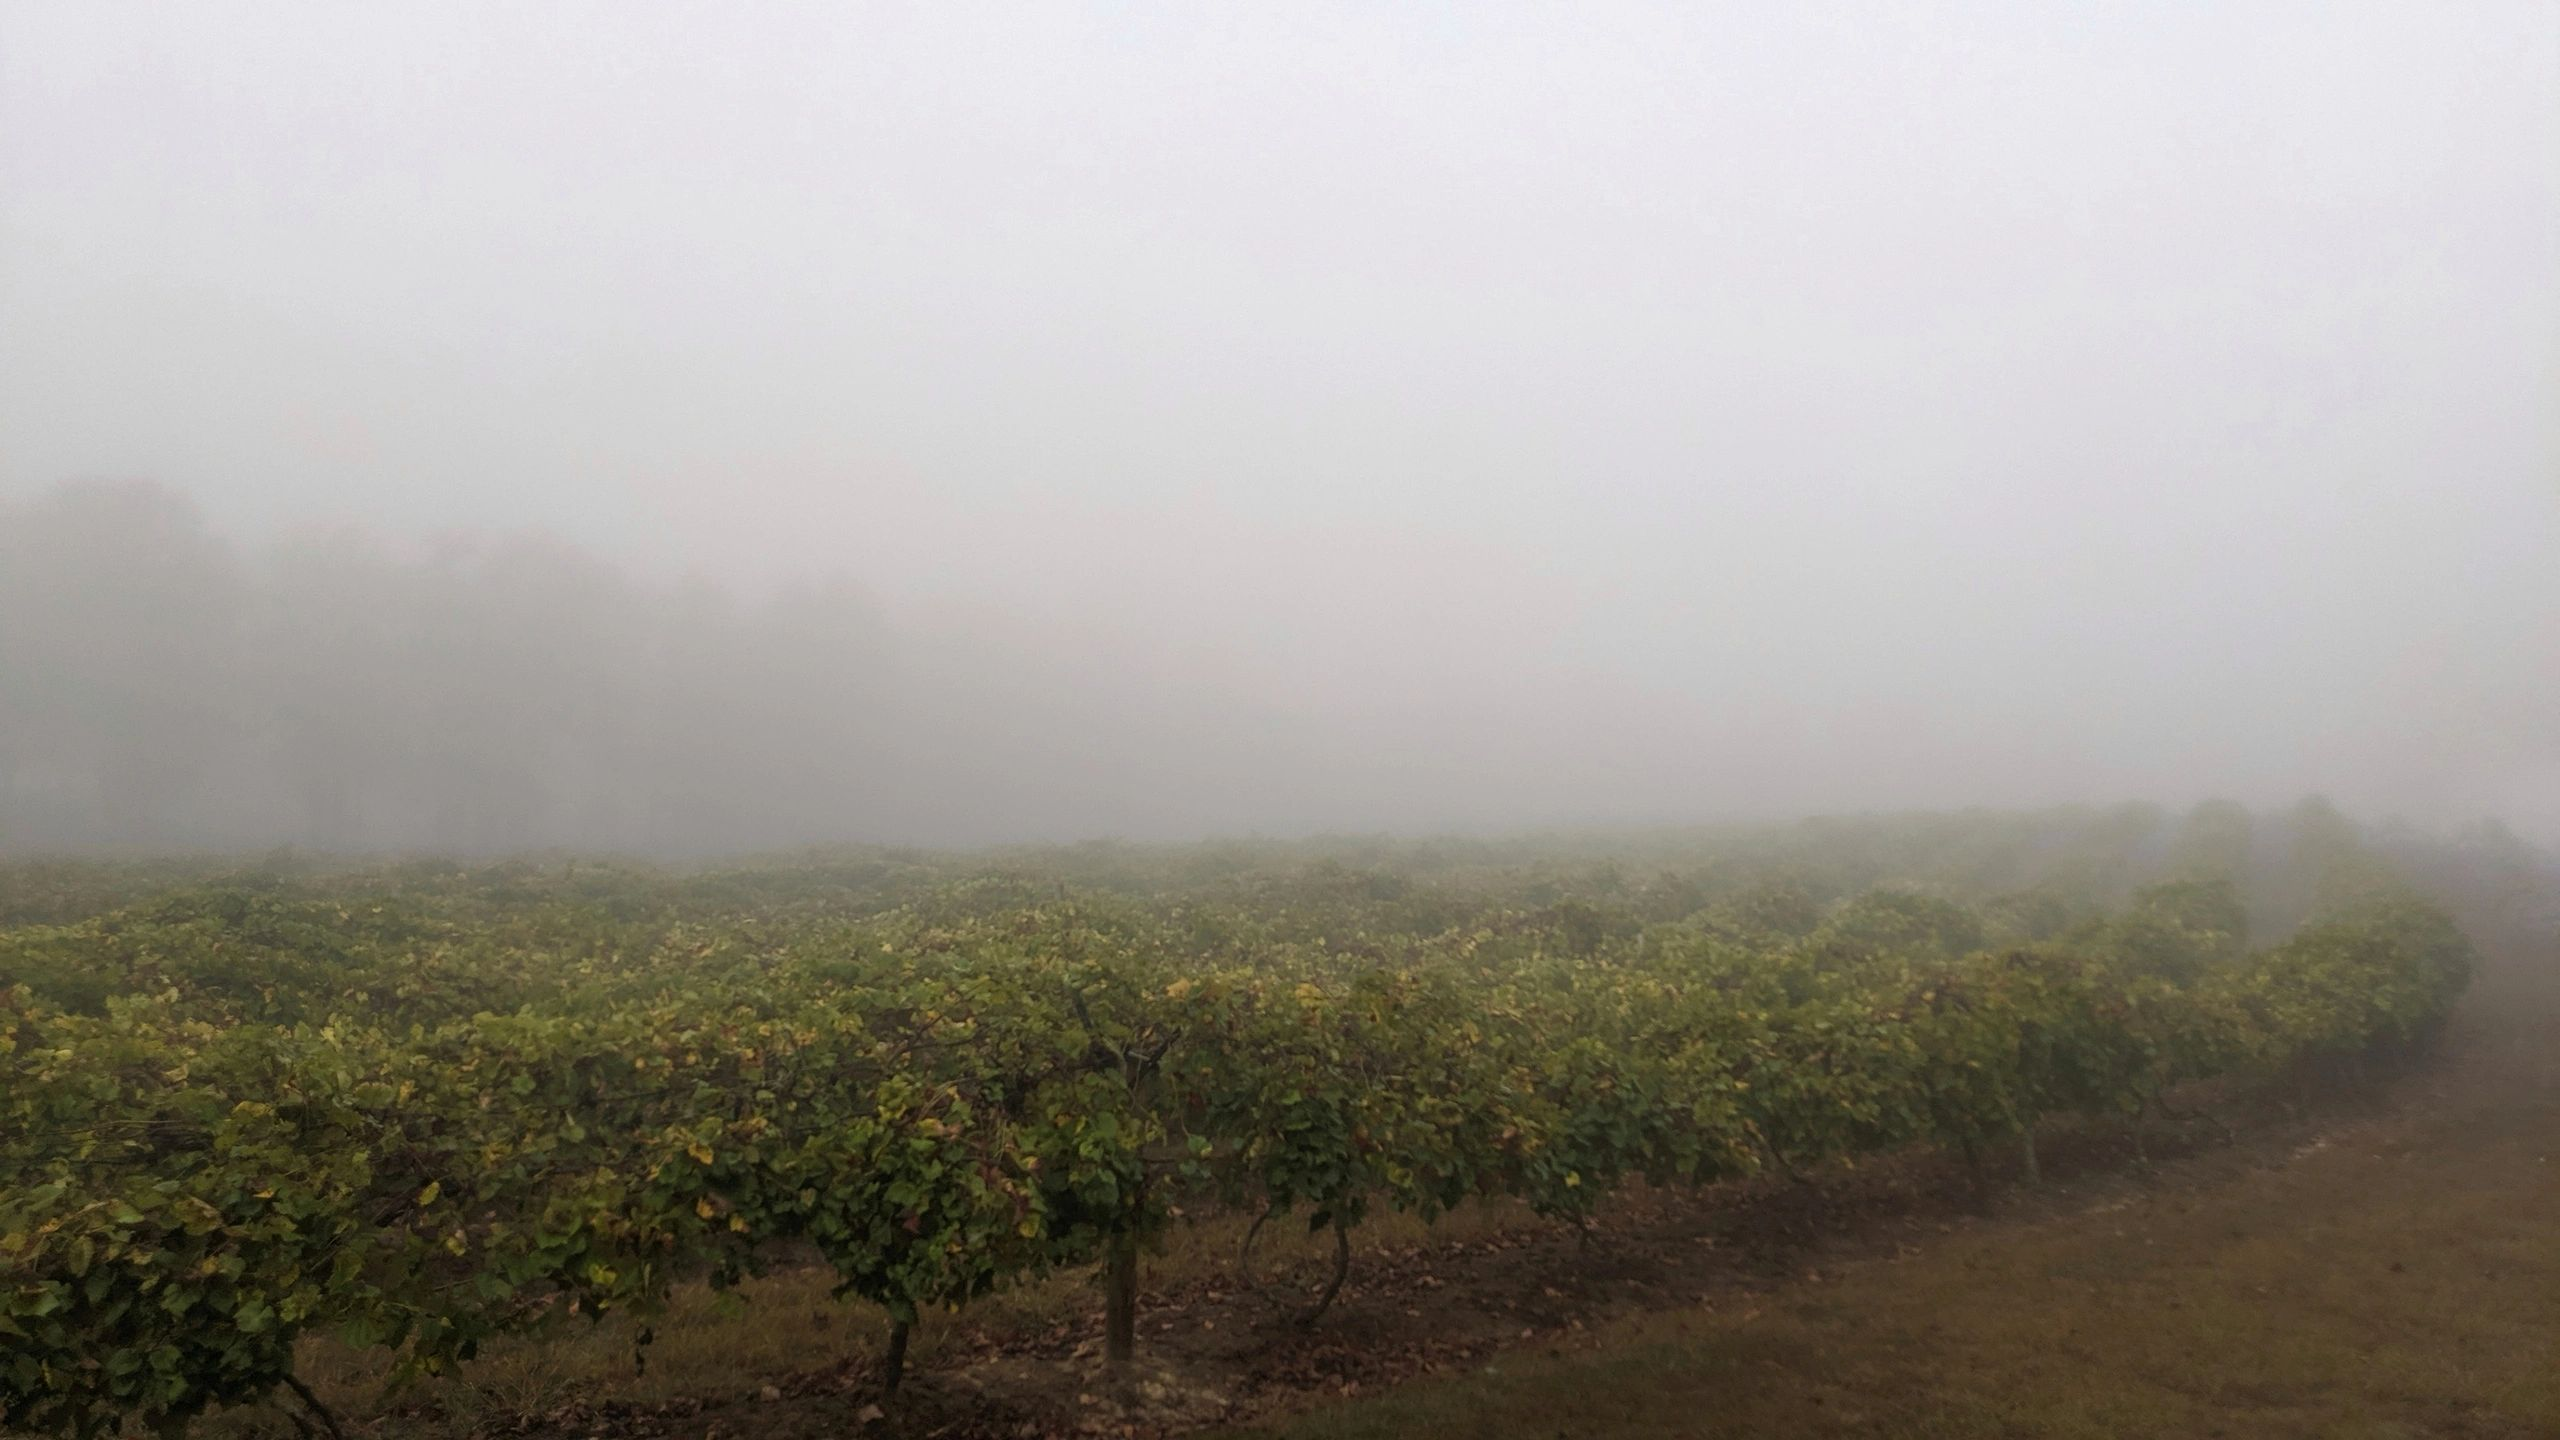 Byrd Cellars early morning fog over the vineyard